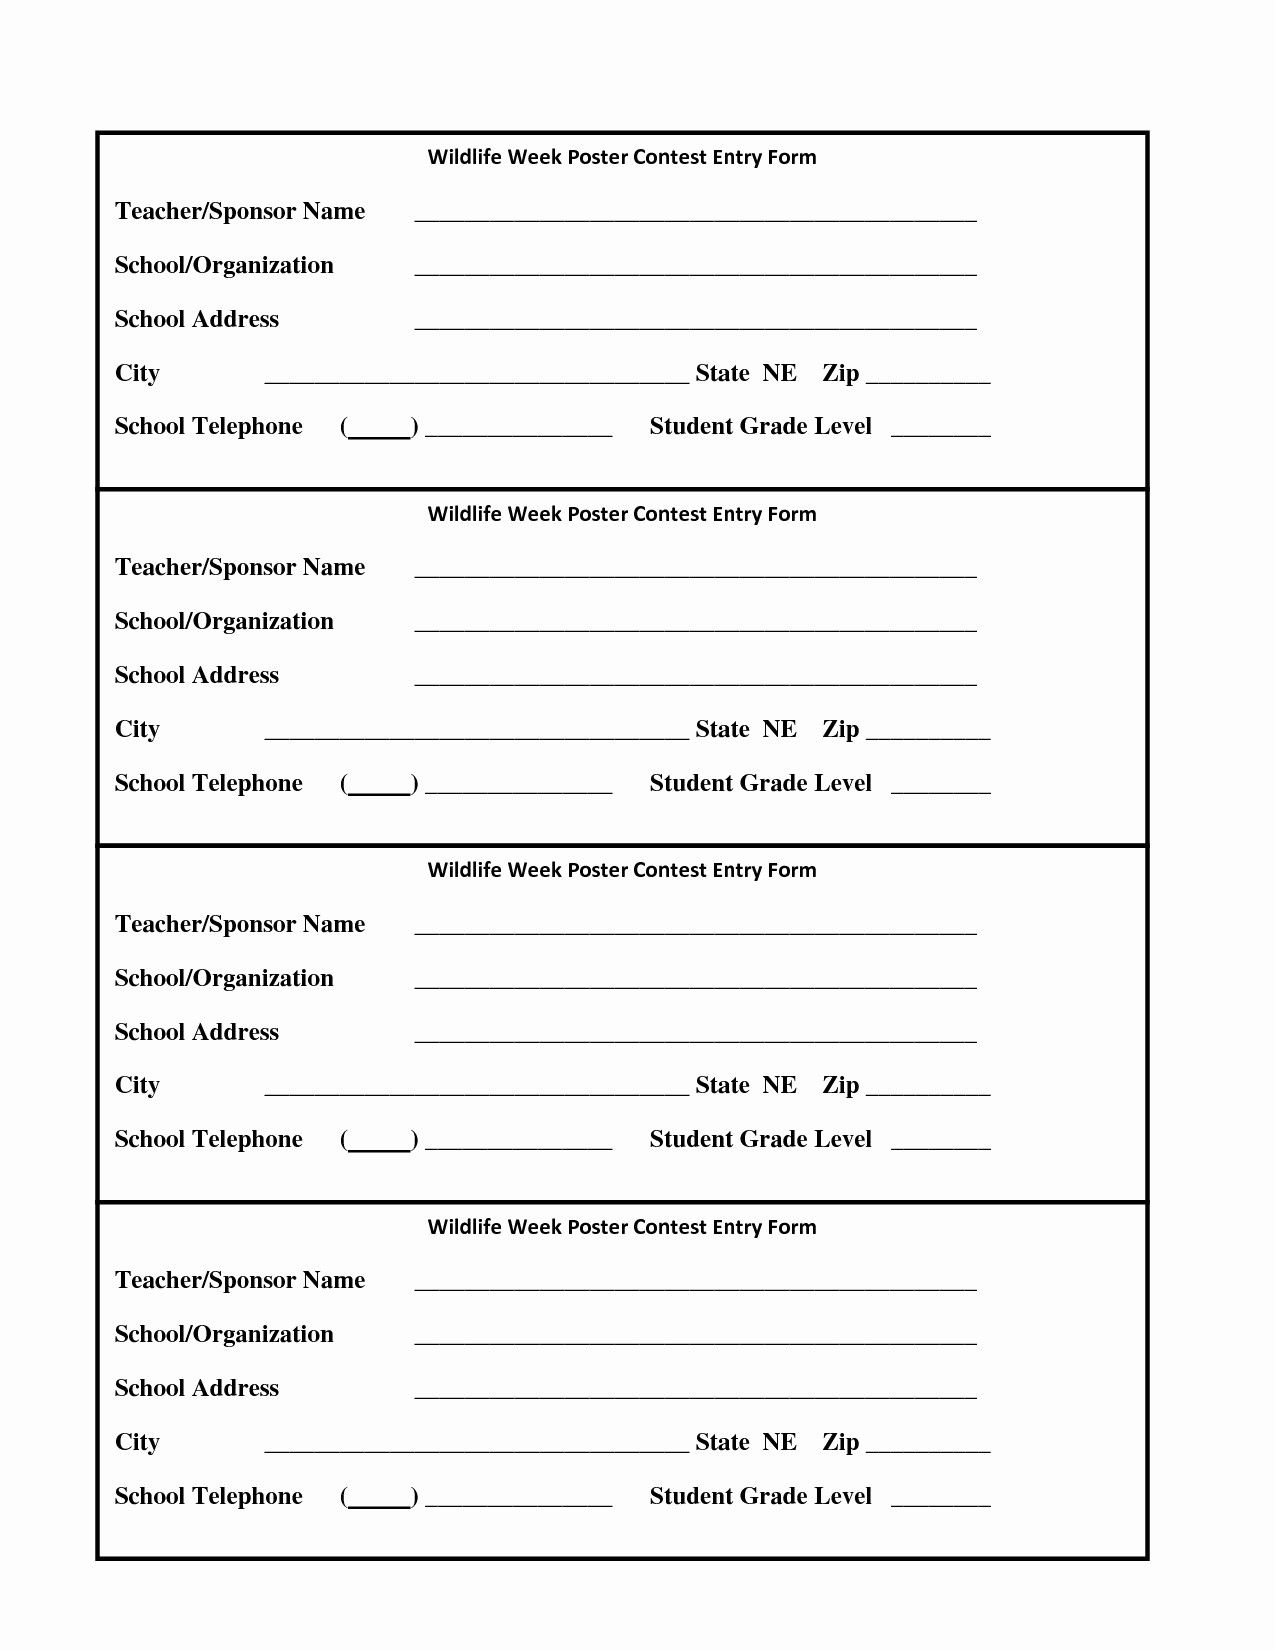 Raffle Entry Form Template Word Best Of Contest Entry Forms Template Blank Templates Resume School Newsletter Template Worksheet Template Templates Blank contest entry form template